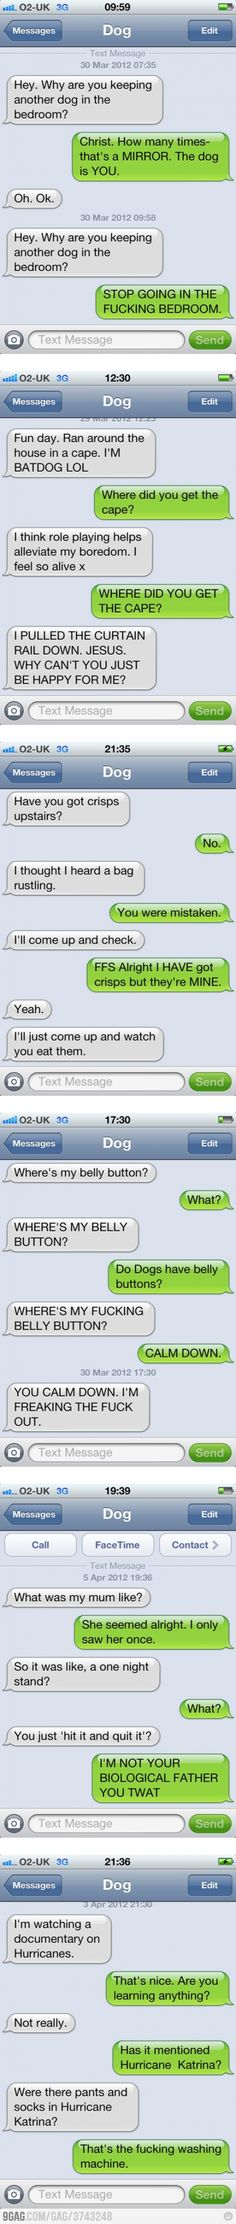 Text Messages From My Dog